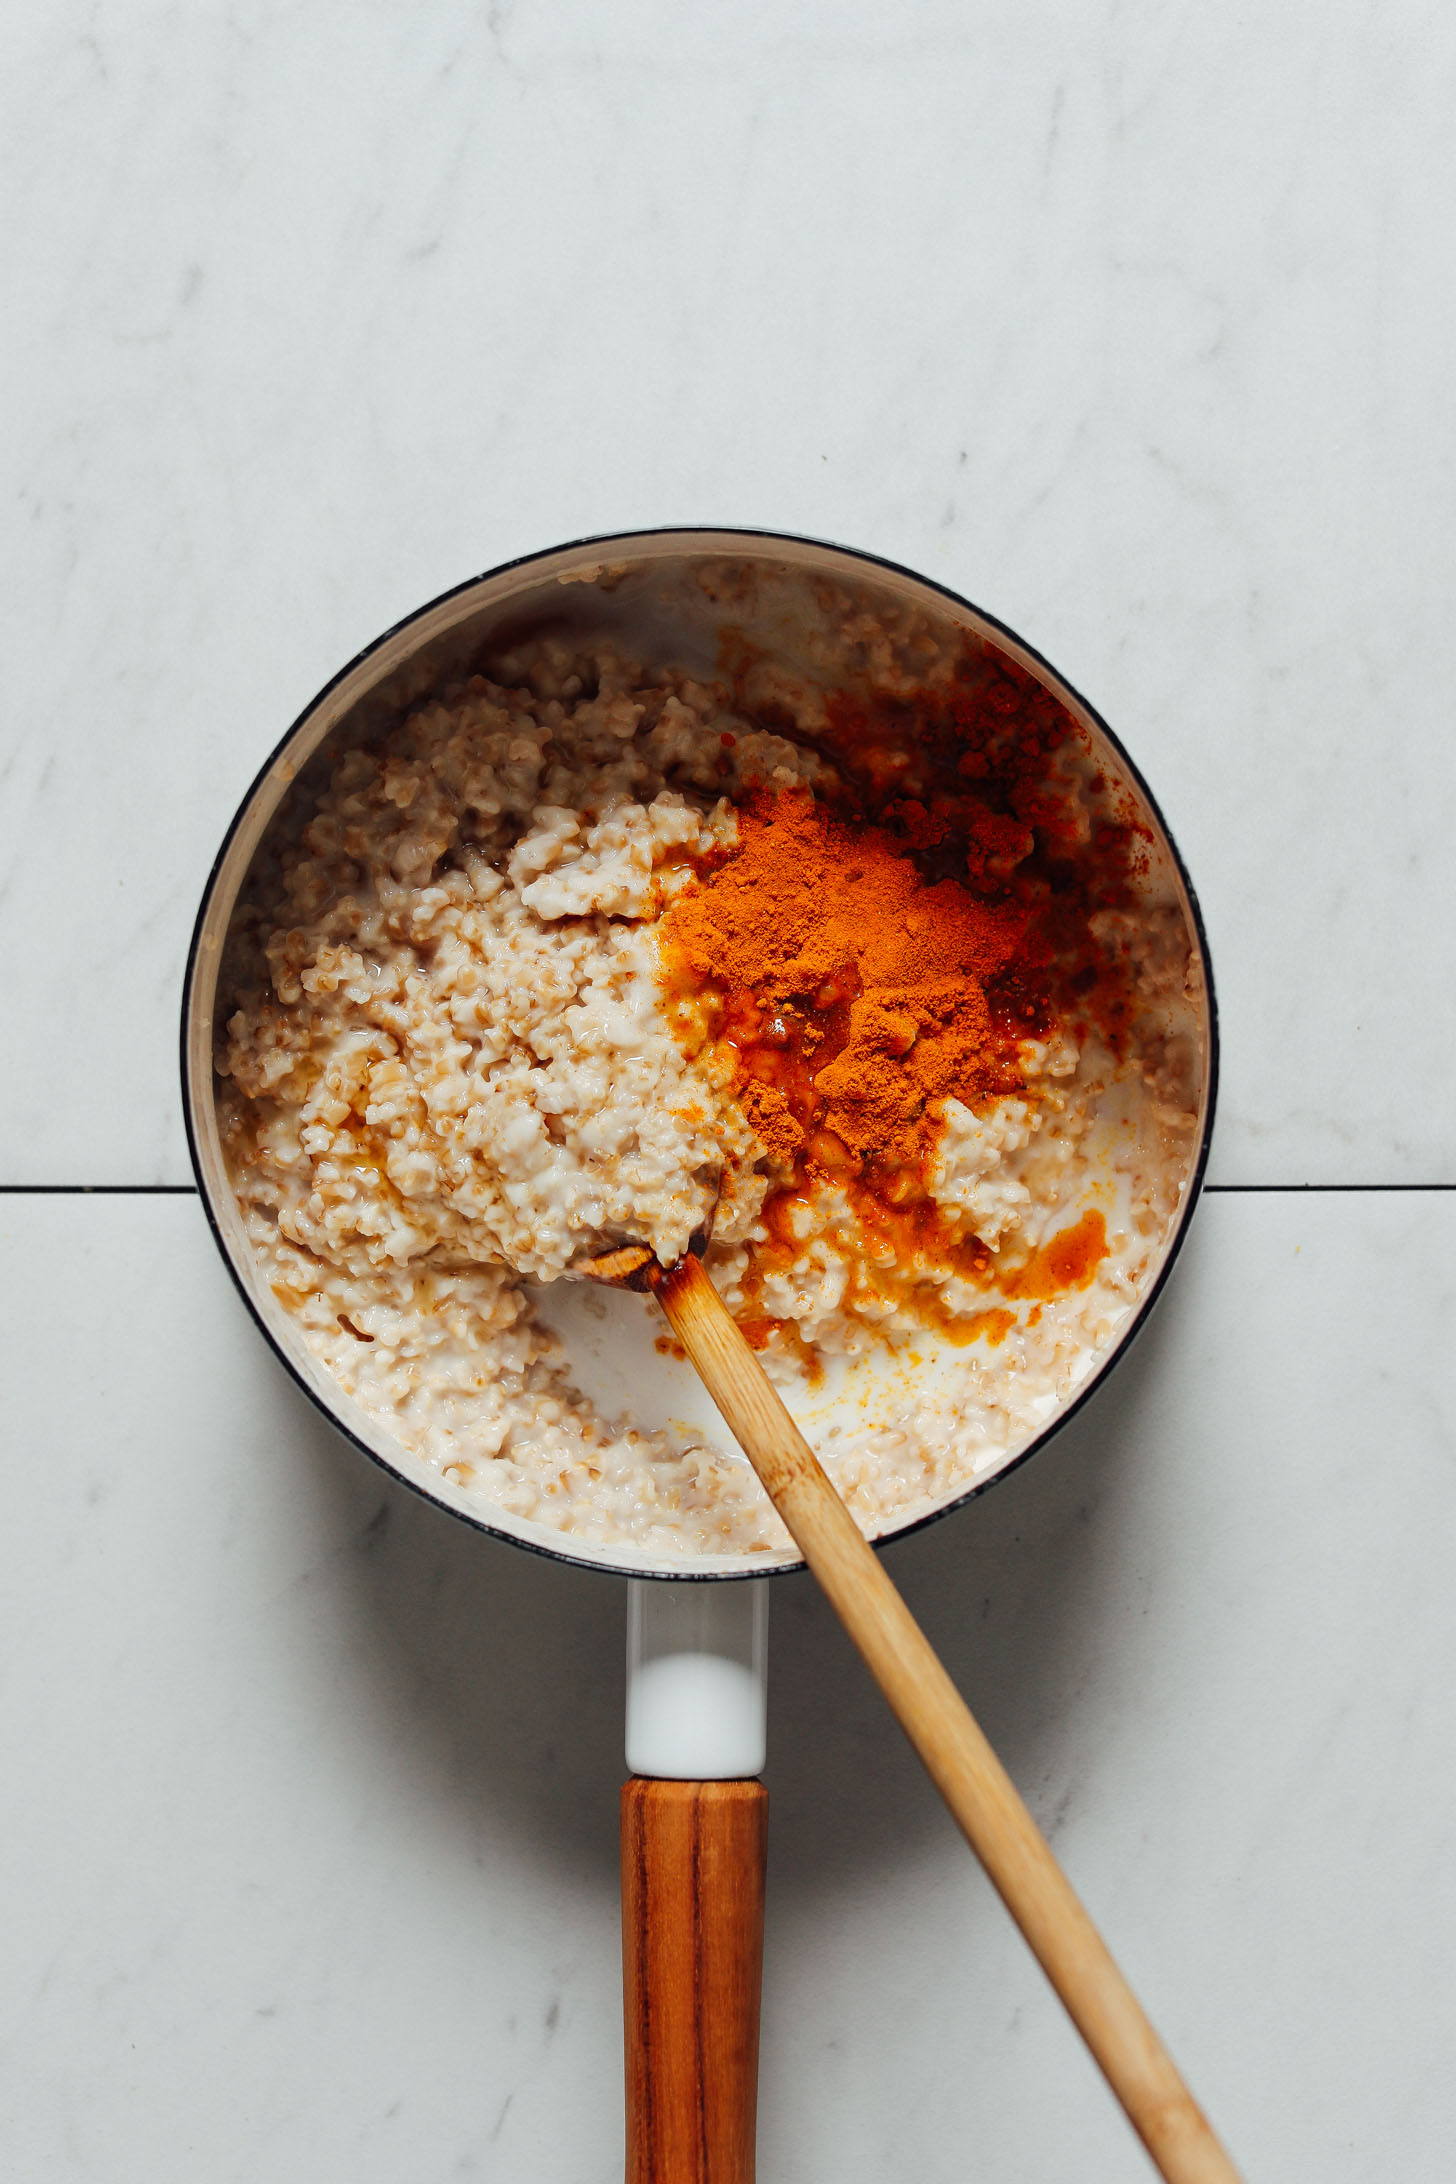 Wooden spoon in a saucepan of our Turmeric Porridge recipe